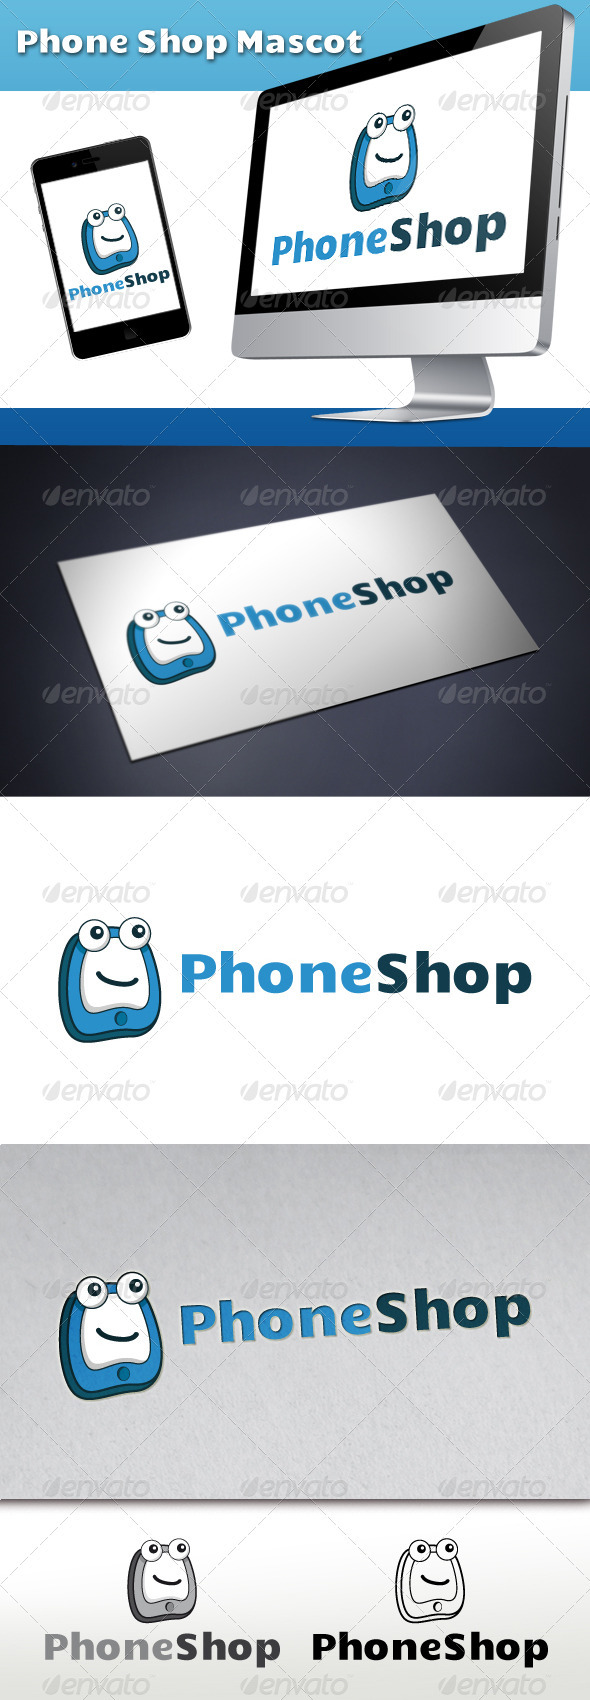 GraphicRiver Phone Shop Logo Mascot 3291419